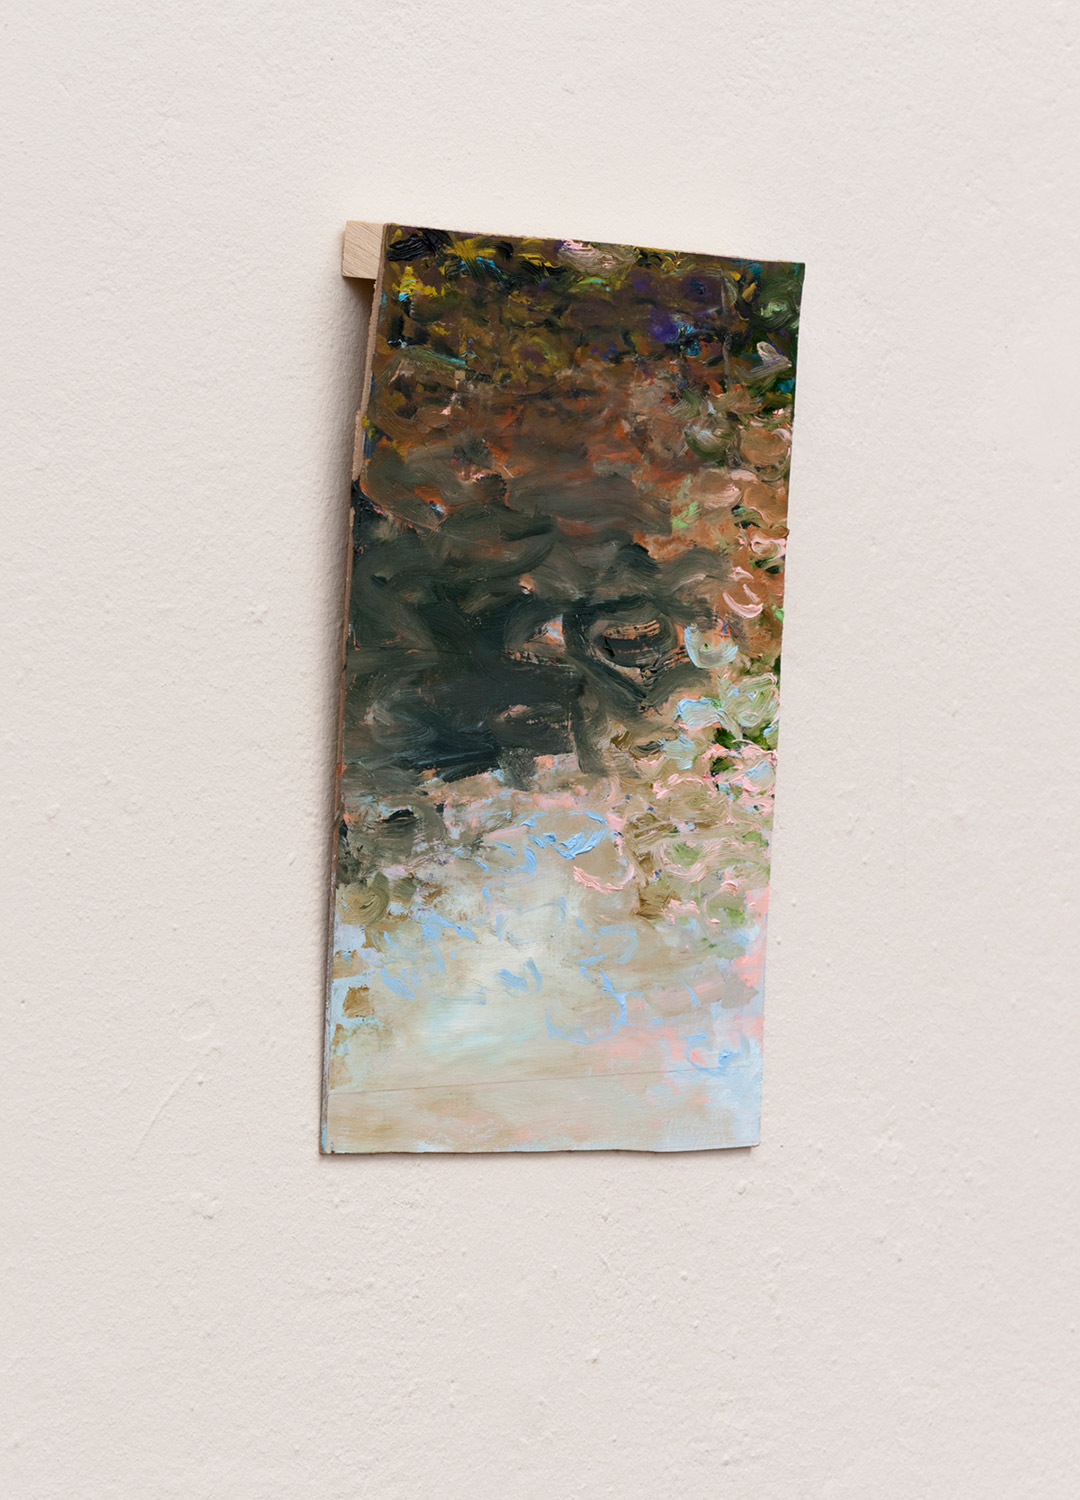 Standing in Water III   Oil on board, wood 11 × 6 × 1 inches 28 × 11 × 2.5 cm 2015